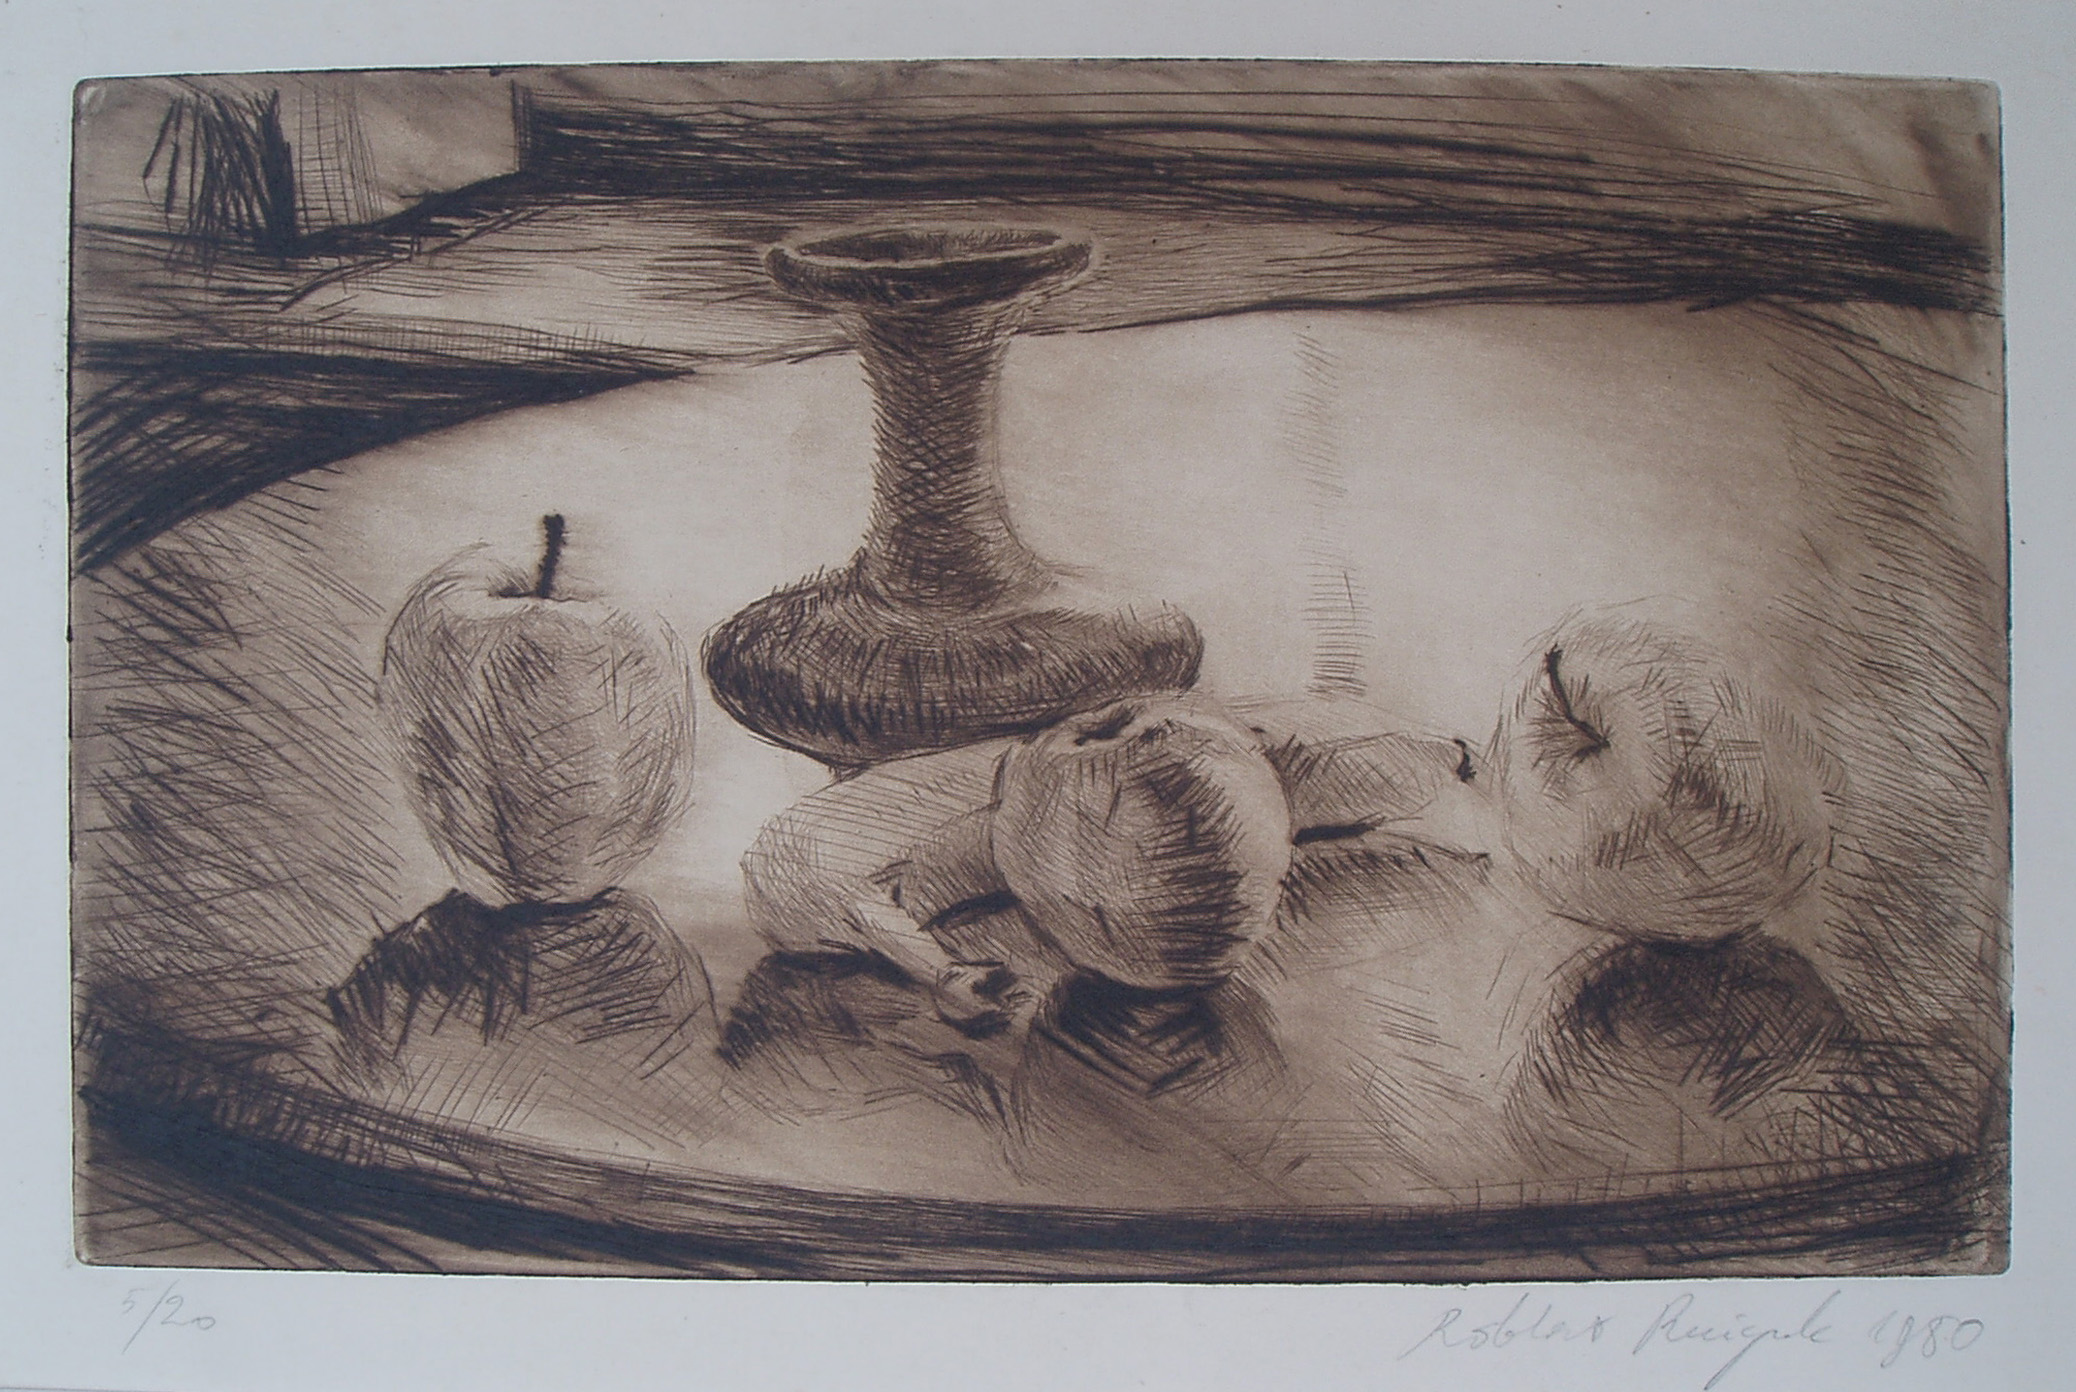 Robbert Ruigrok, 'Still Life with Fruit', 1980. Drypoint.